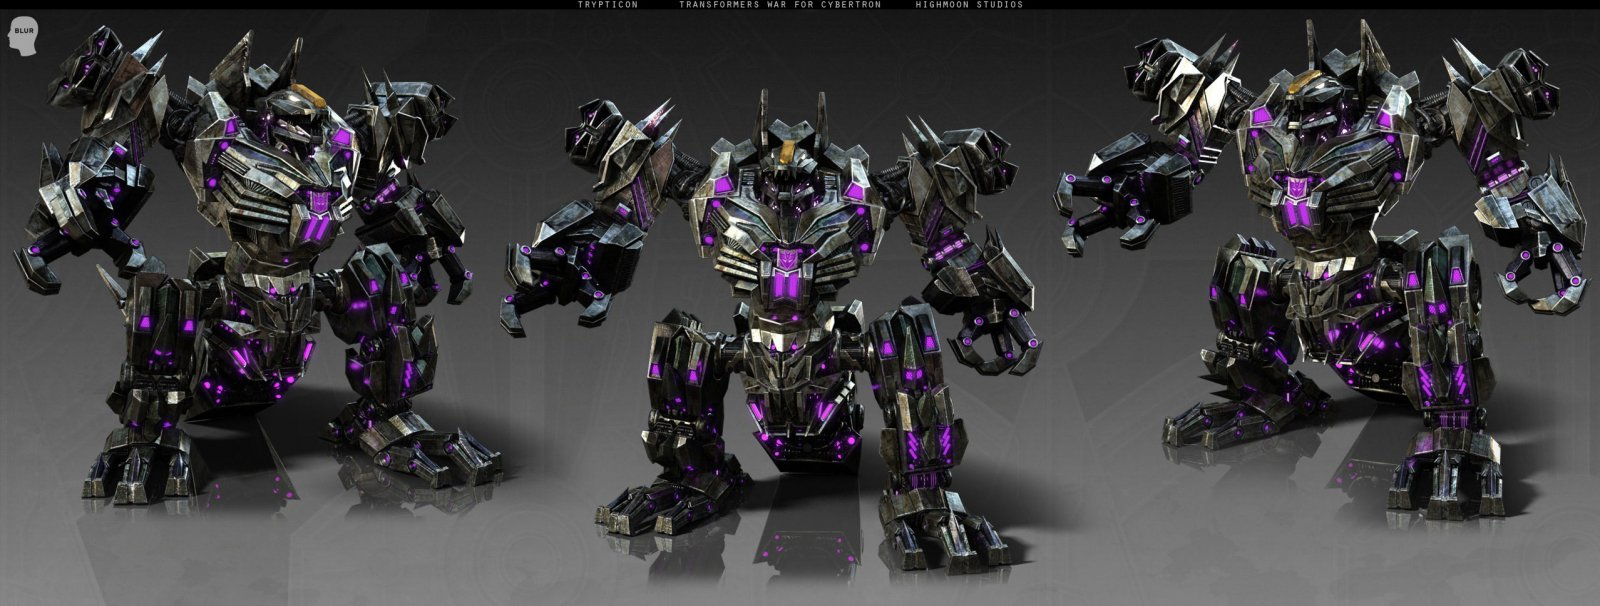 Trypticon 1 Image Videogamelover Mod Db